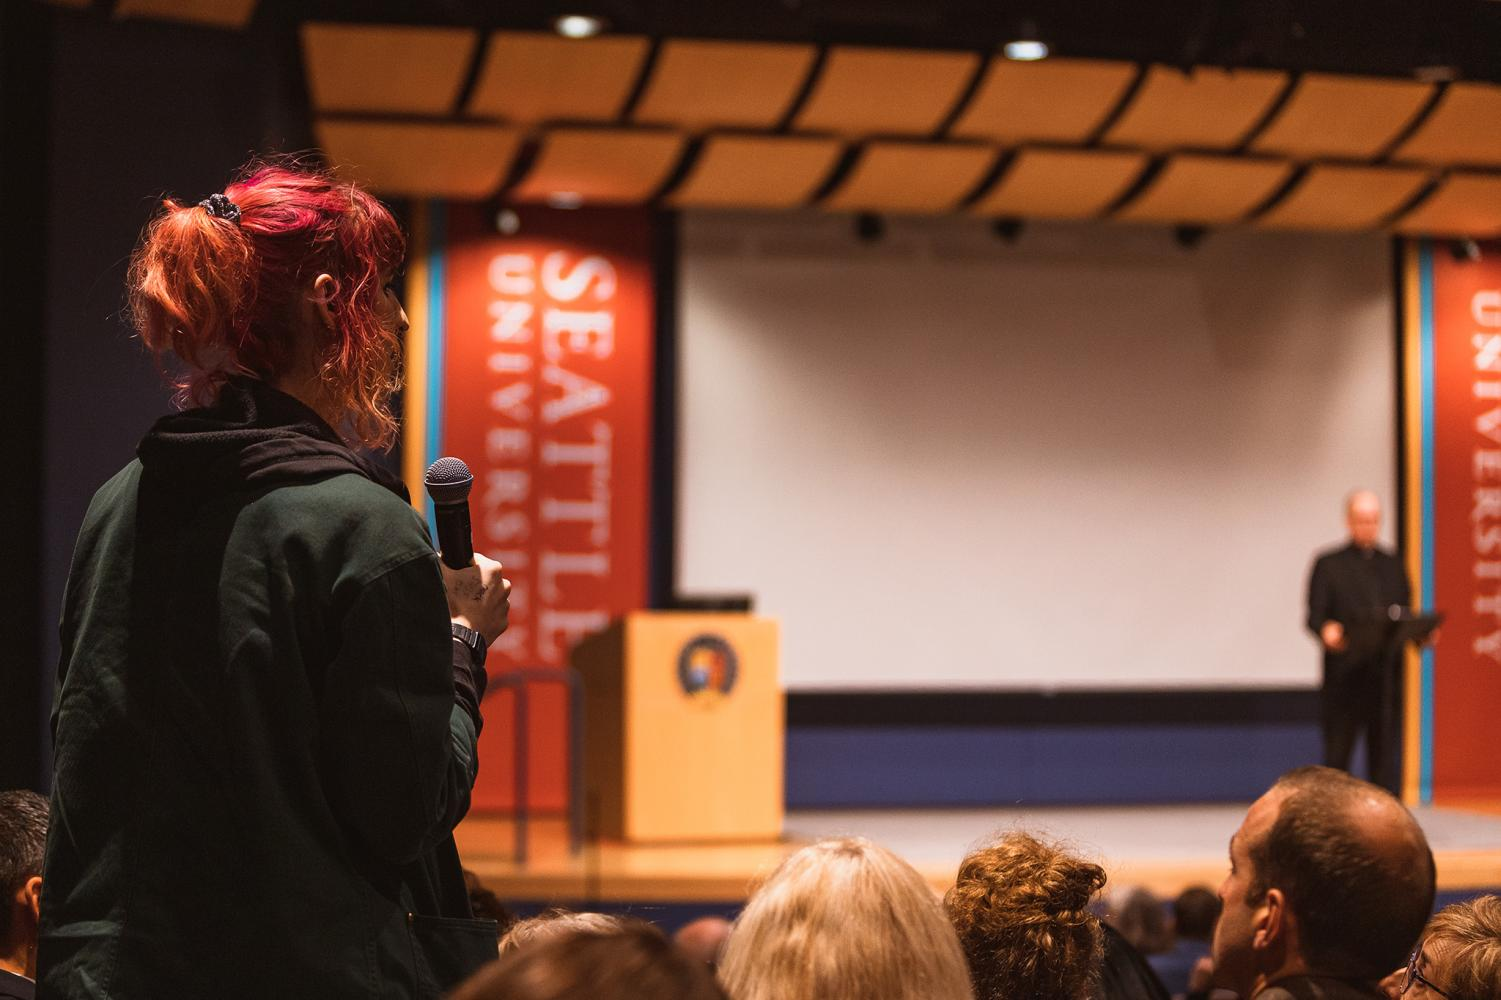 The Fall Quarter President's Forum was open to audience questions following Sundborg's recent Planned Parenthood decision.